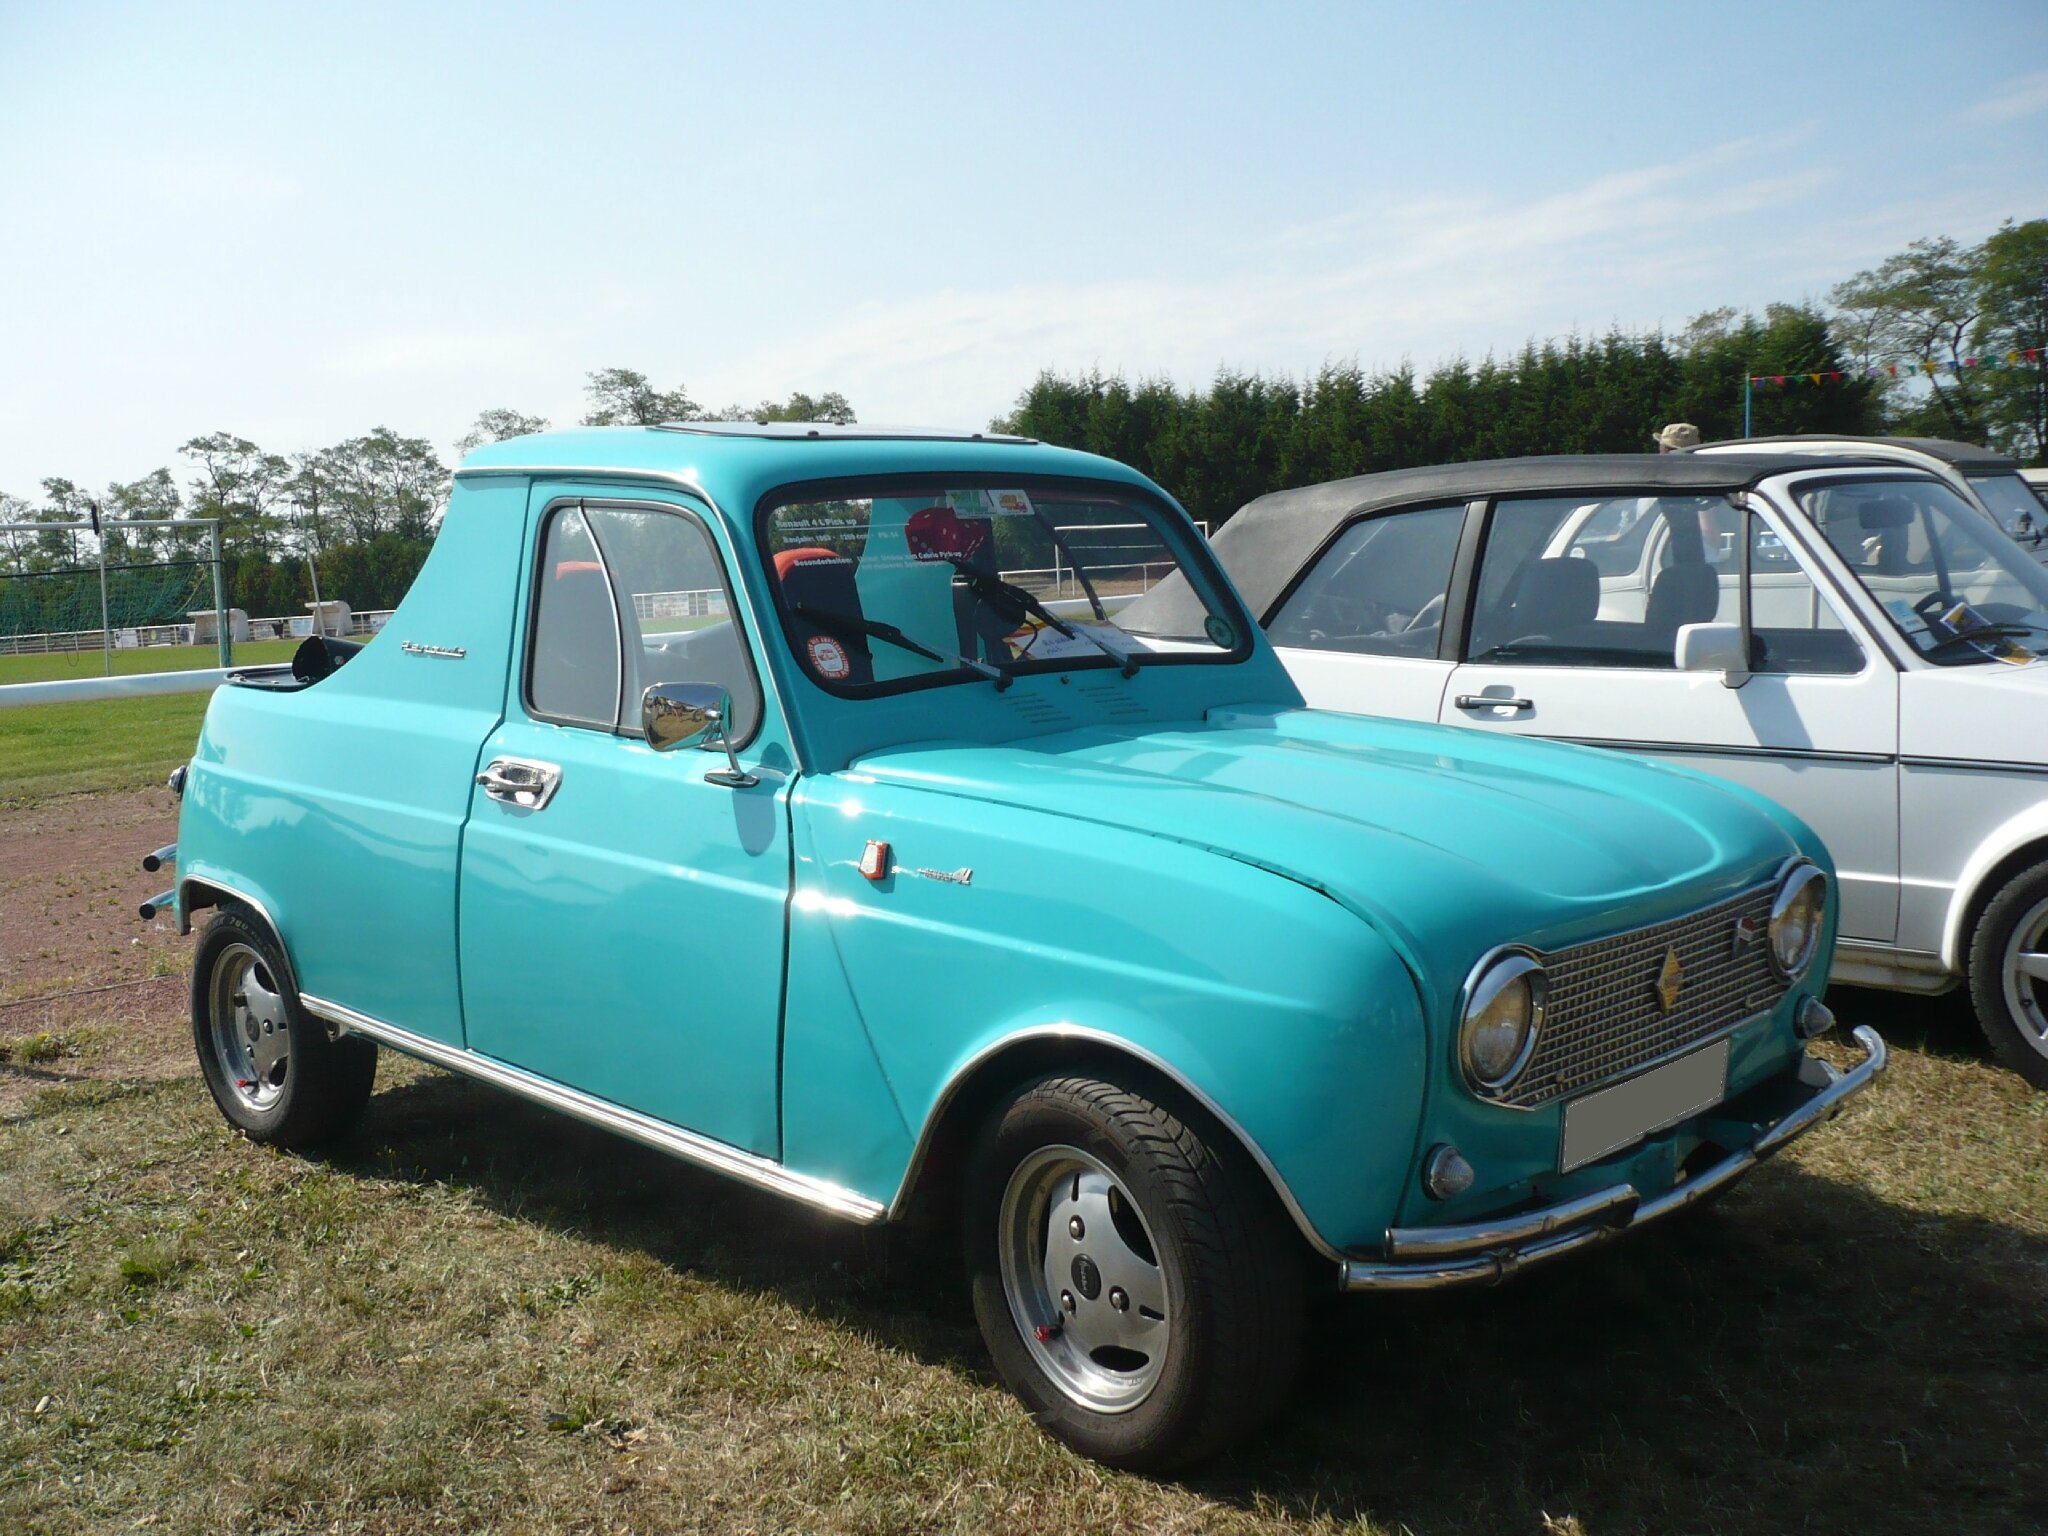 renault 4l pick up 1963 cr hange 1 photo de 081 20e bourse de cr hange le 9 septembre 2012. Black Bedroom Furniture Sets. Home Design Ideas